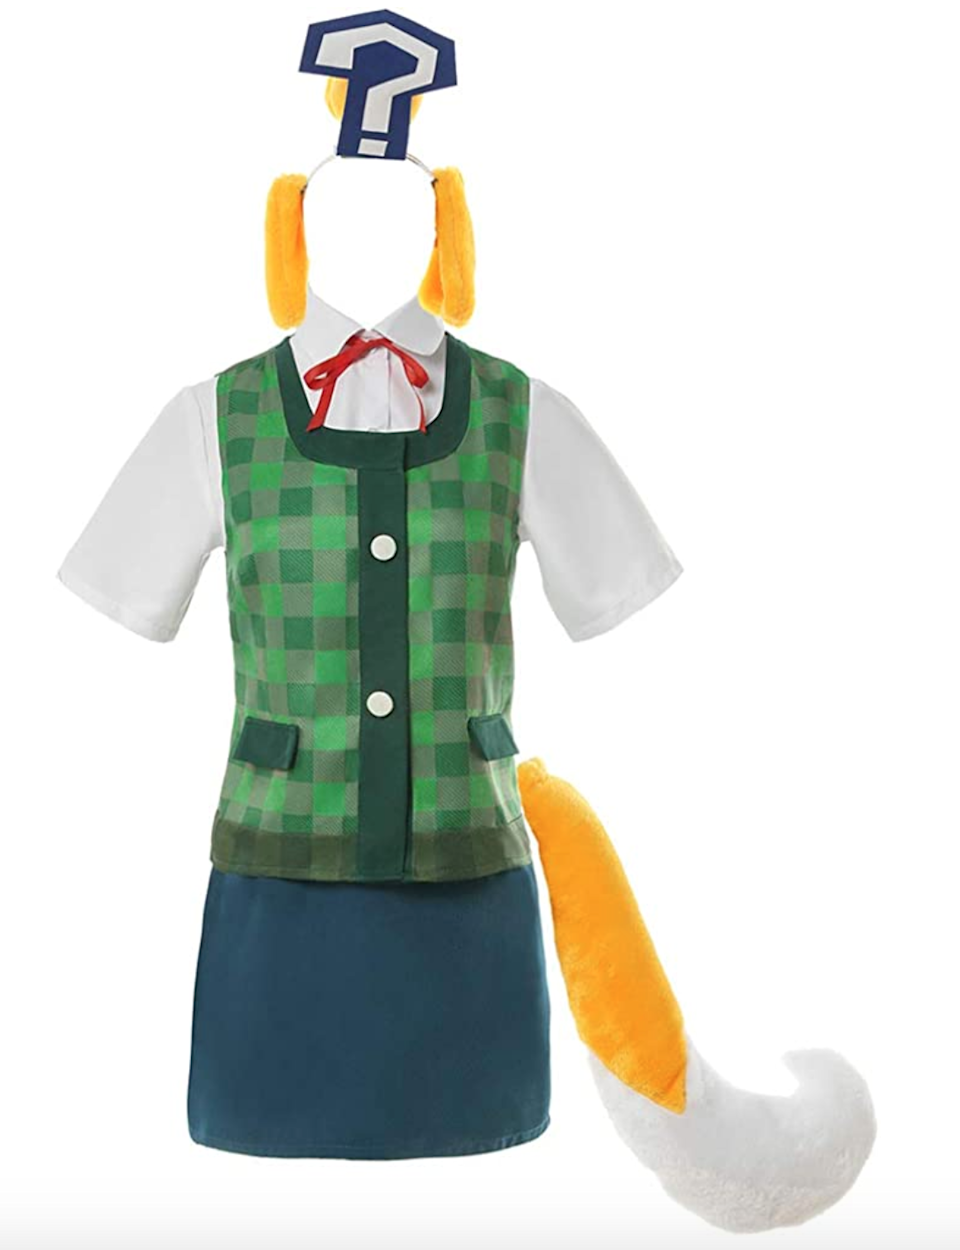 """<h2>Complete Isabelle Outfit</h2><br>This outfit is for the professional cosplayer. It comes with everything you could need for the most accurate cosplay of Isabelle — including her quintessential question mark. <br><br><em>Shop</em> <strong><em><a href=""""https://amzn.to/3cZC3Uw"""" rel=""""nofollow noopener"""" target=""""_blank"""" data-ylk=""""slk:Amazon"""" class=""""link rapid-noclick-resp"""">Amazon</a></em></strong><br><br><br><strong>Nuoqi</strong> Isabelle Cosplay Outfit, $, available at <a href=""""https://www.amazon.com/Nuoqi-Crossing-Cosplay-Isabelle-Halloween/dp/B088B78B3J/ref=sr_1_5"""" rel=""""nofollow noopener"""" target=""""_blank"""" data-ylk=""""slk:Amazon"""" class=""""link rapid-noclick-resp"""">Amazon</a>"""